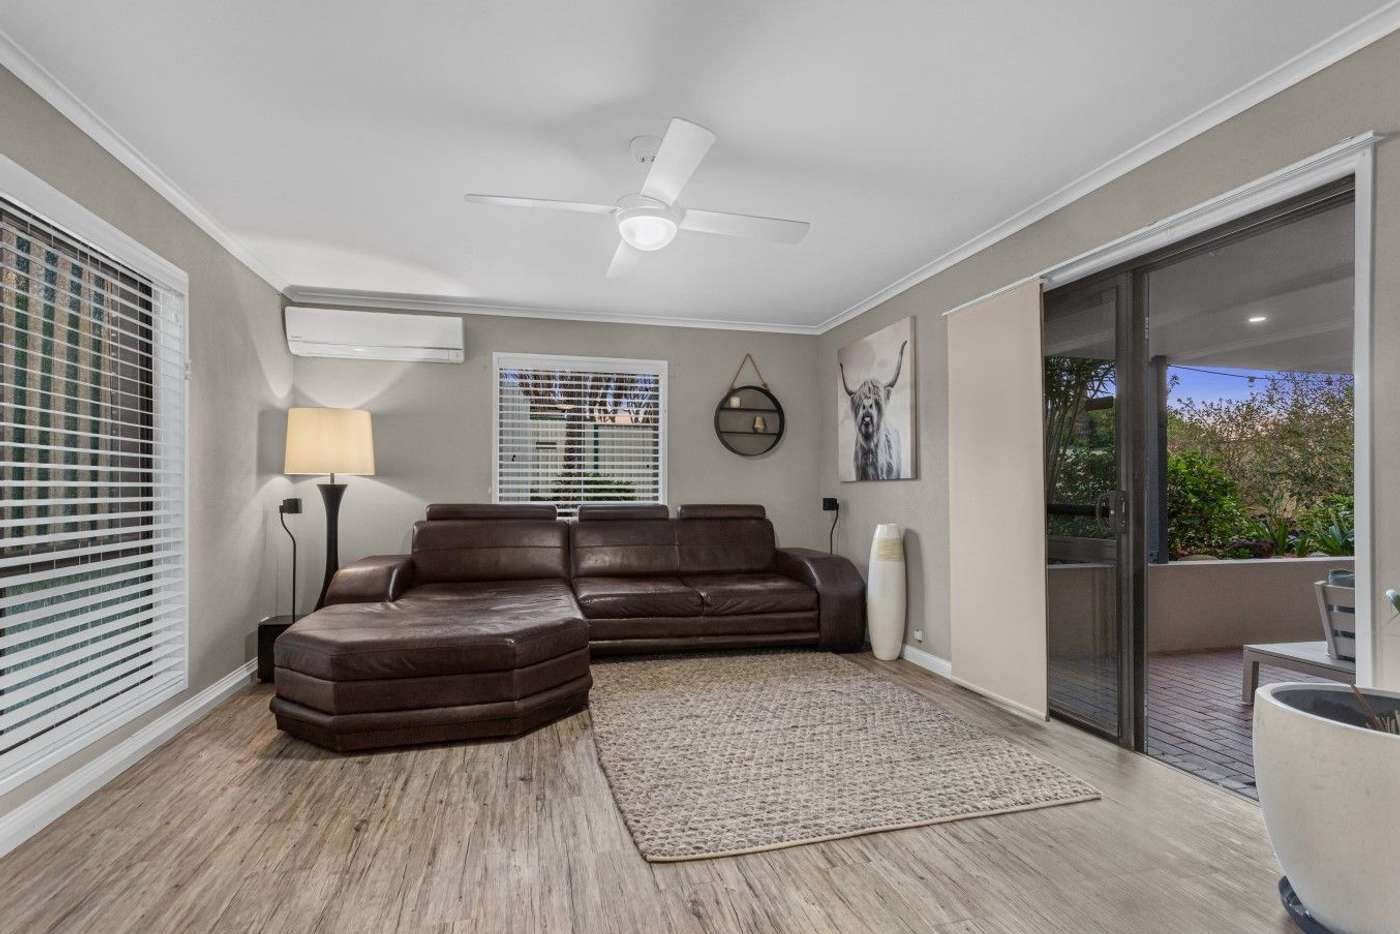 Sixth view of Homely house listing, 20 Athos Street, Riverhills QLD 4074